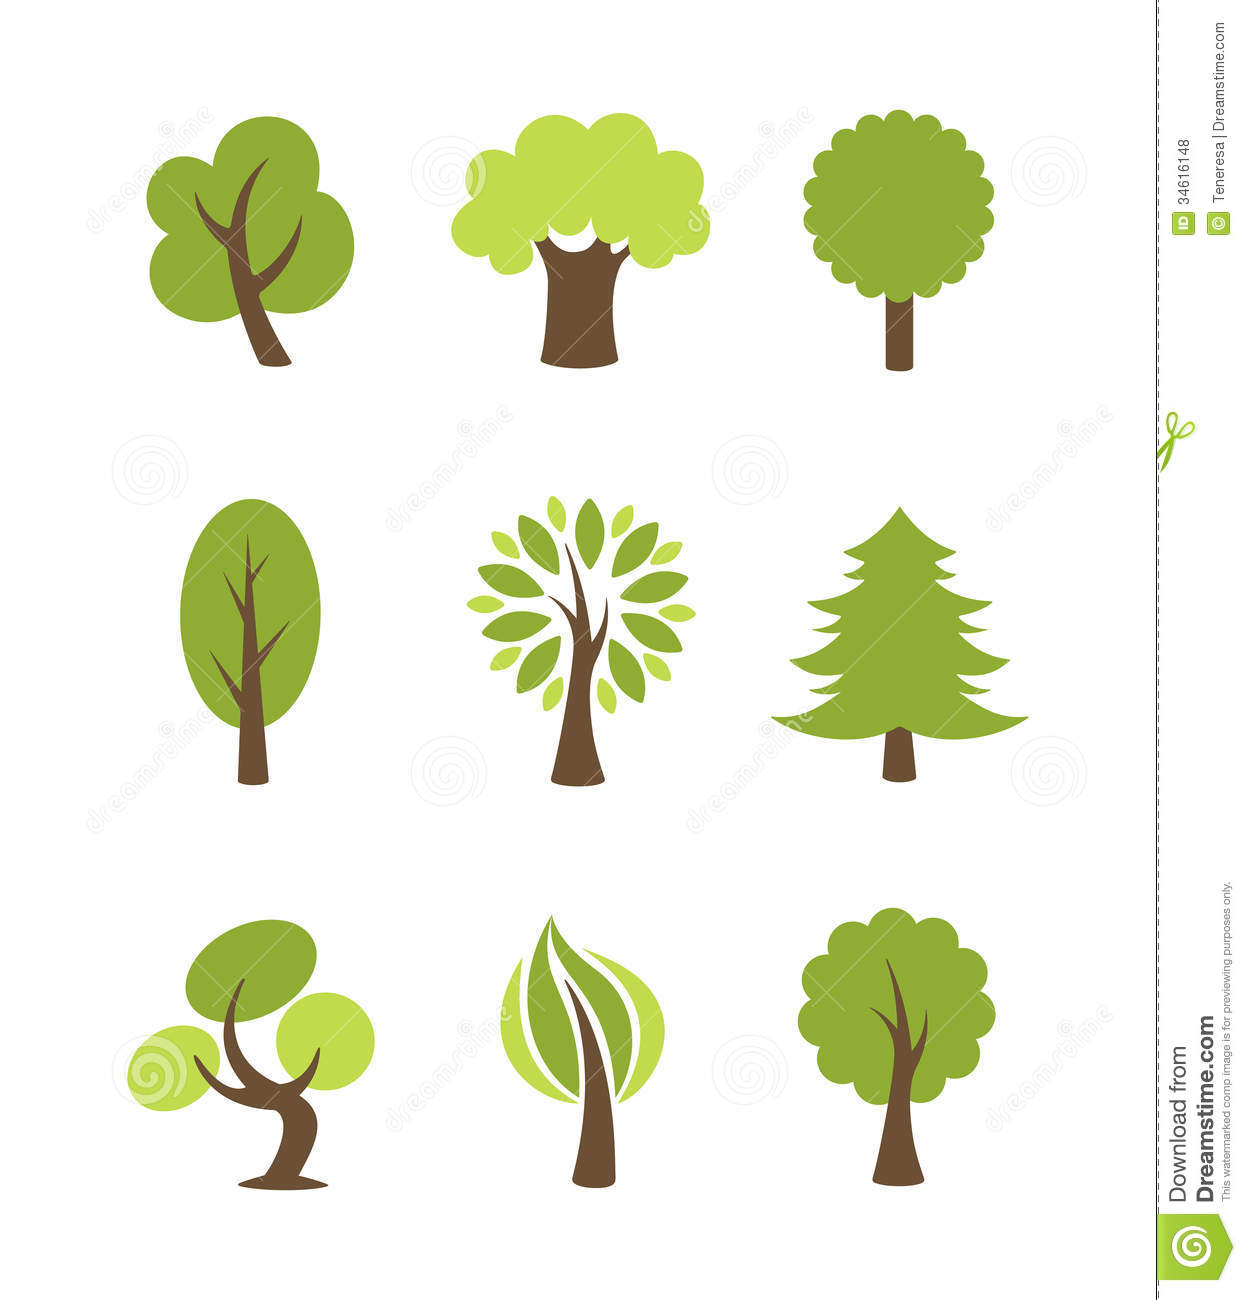 Tree Icons Set Royalty Free Stock Photos   Image: 34616148 image #1536